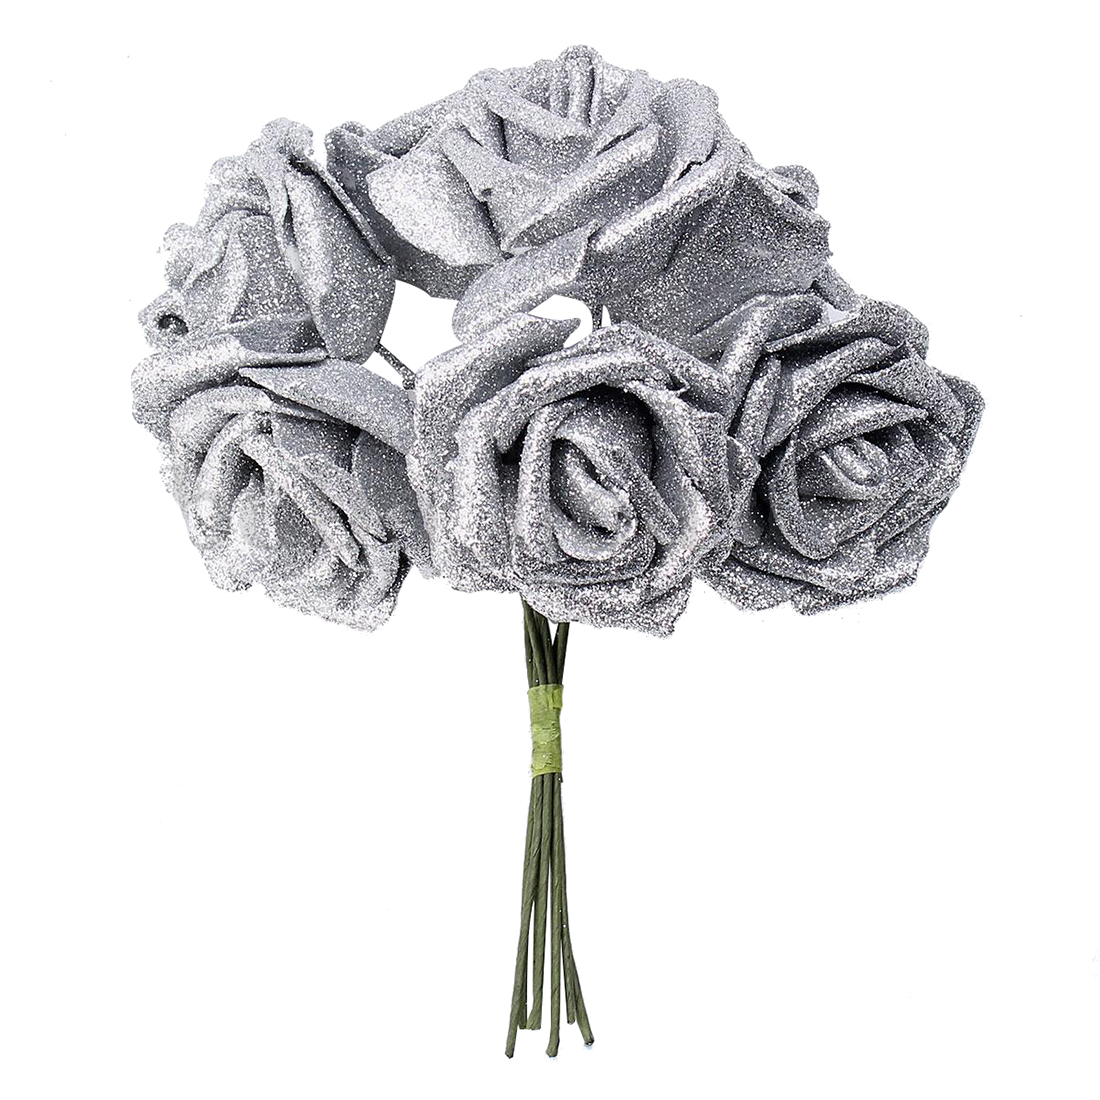 7 Schiuma Rose Artificial Flower Glitter Bouquet da sposa Home Wedding Decoration Colore argento secondo l'immagine